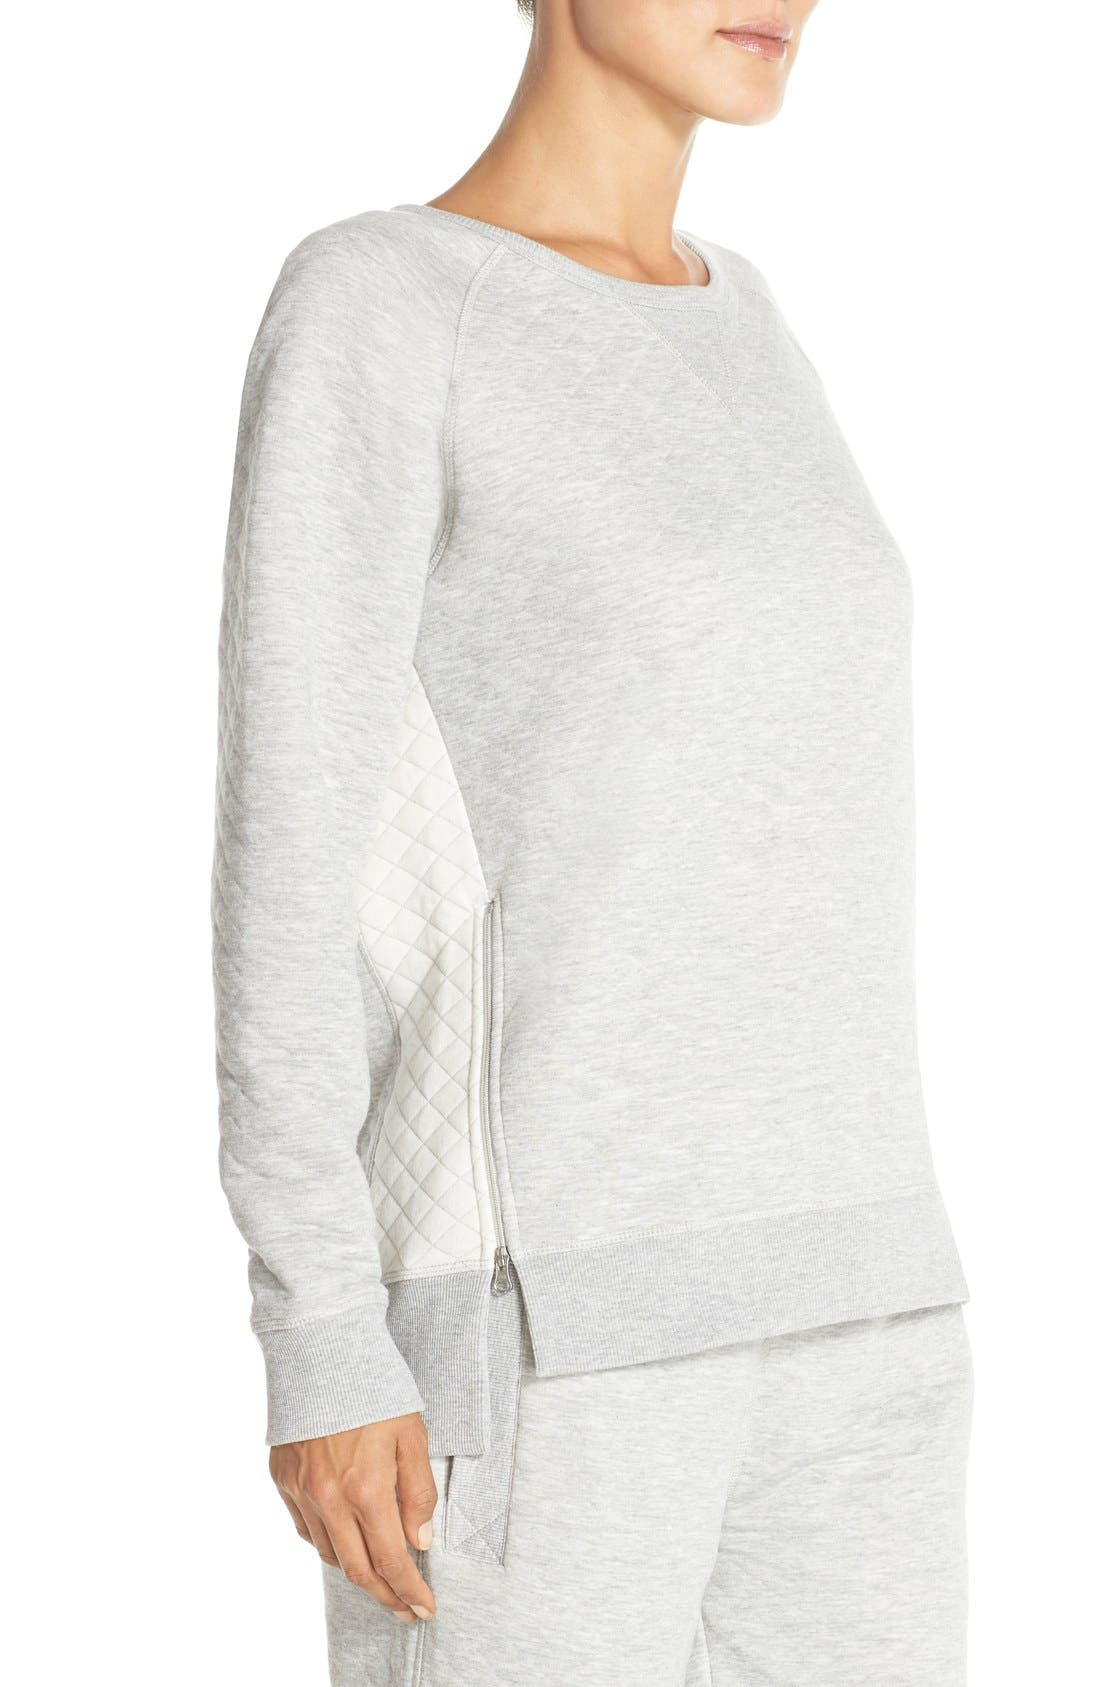 DANIEL BUCHLER,                             Quilted Cotton Sweatshirt,                             Alternate thumbnail 6, color,                             020